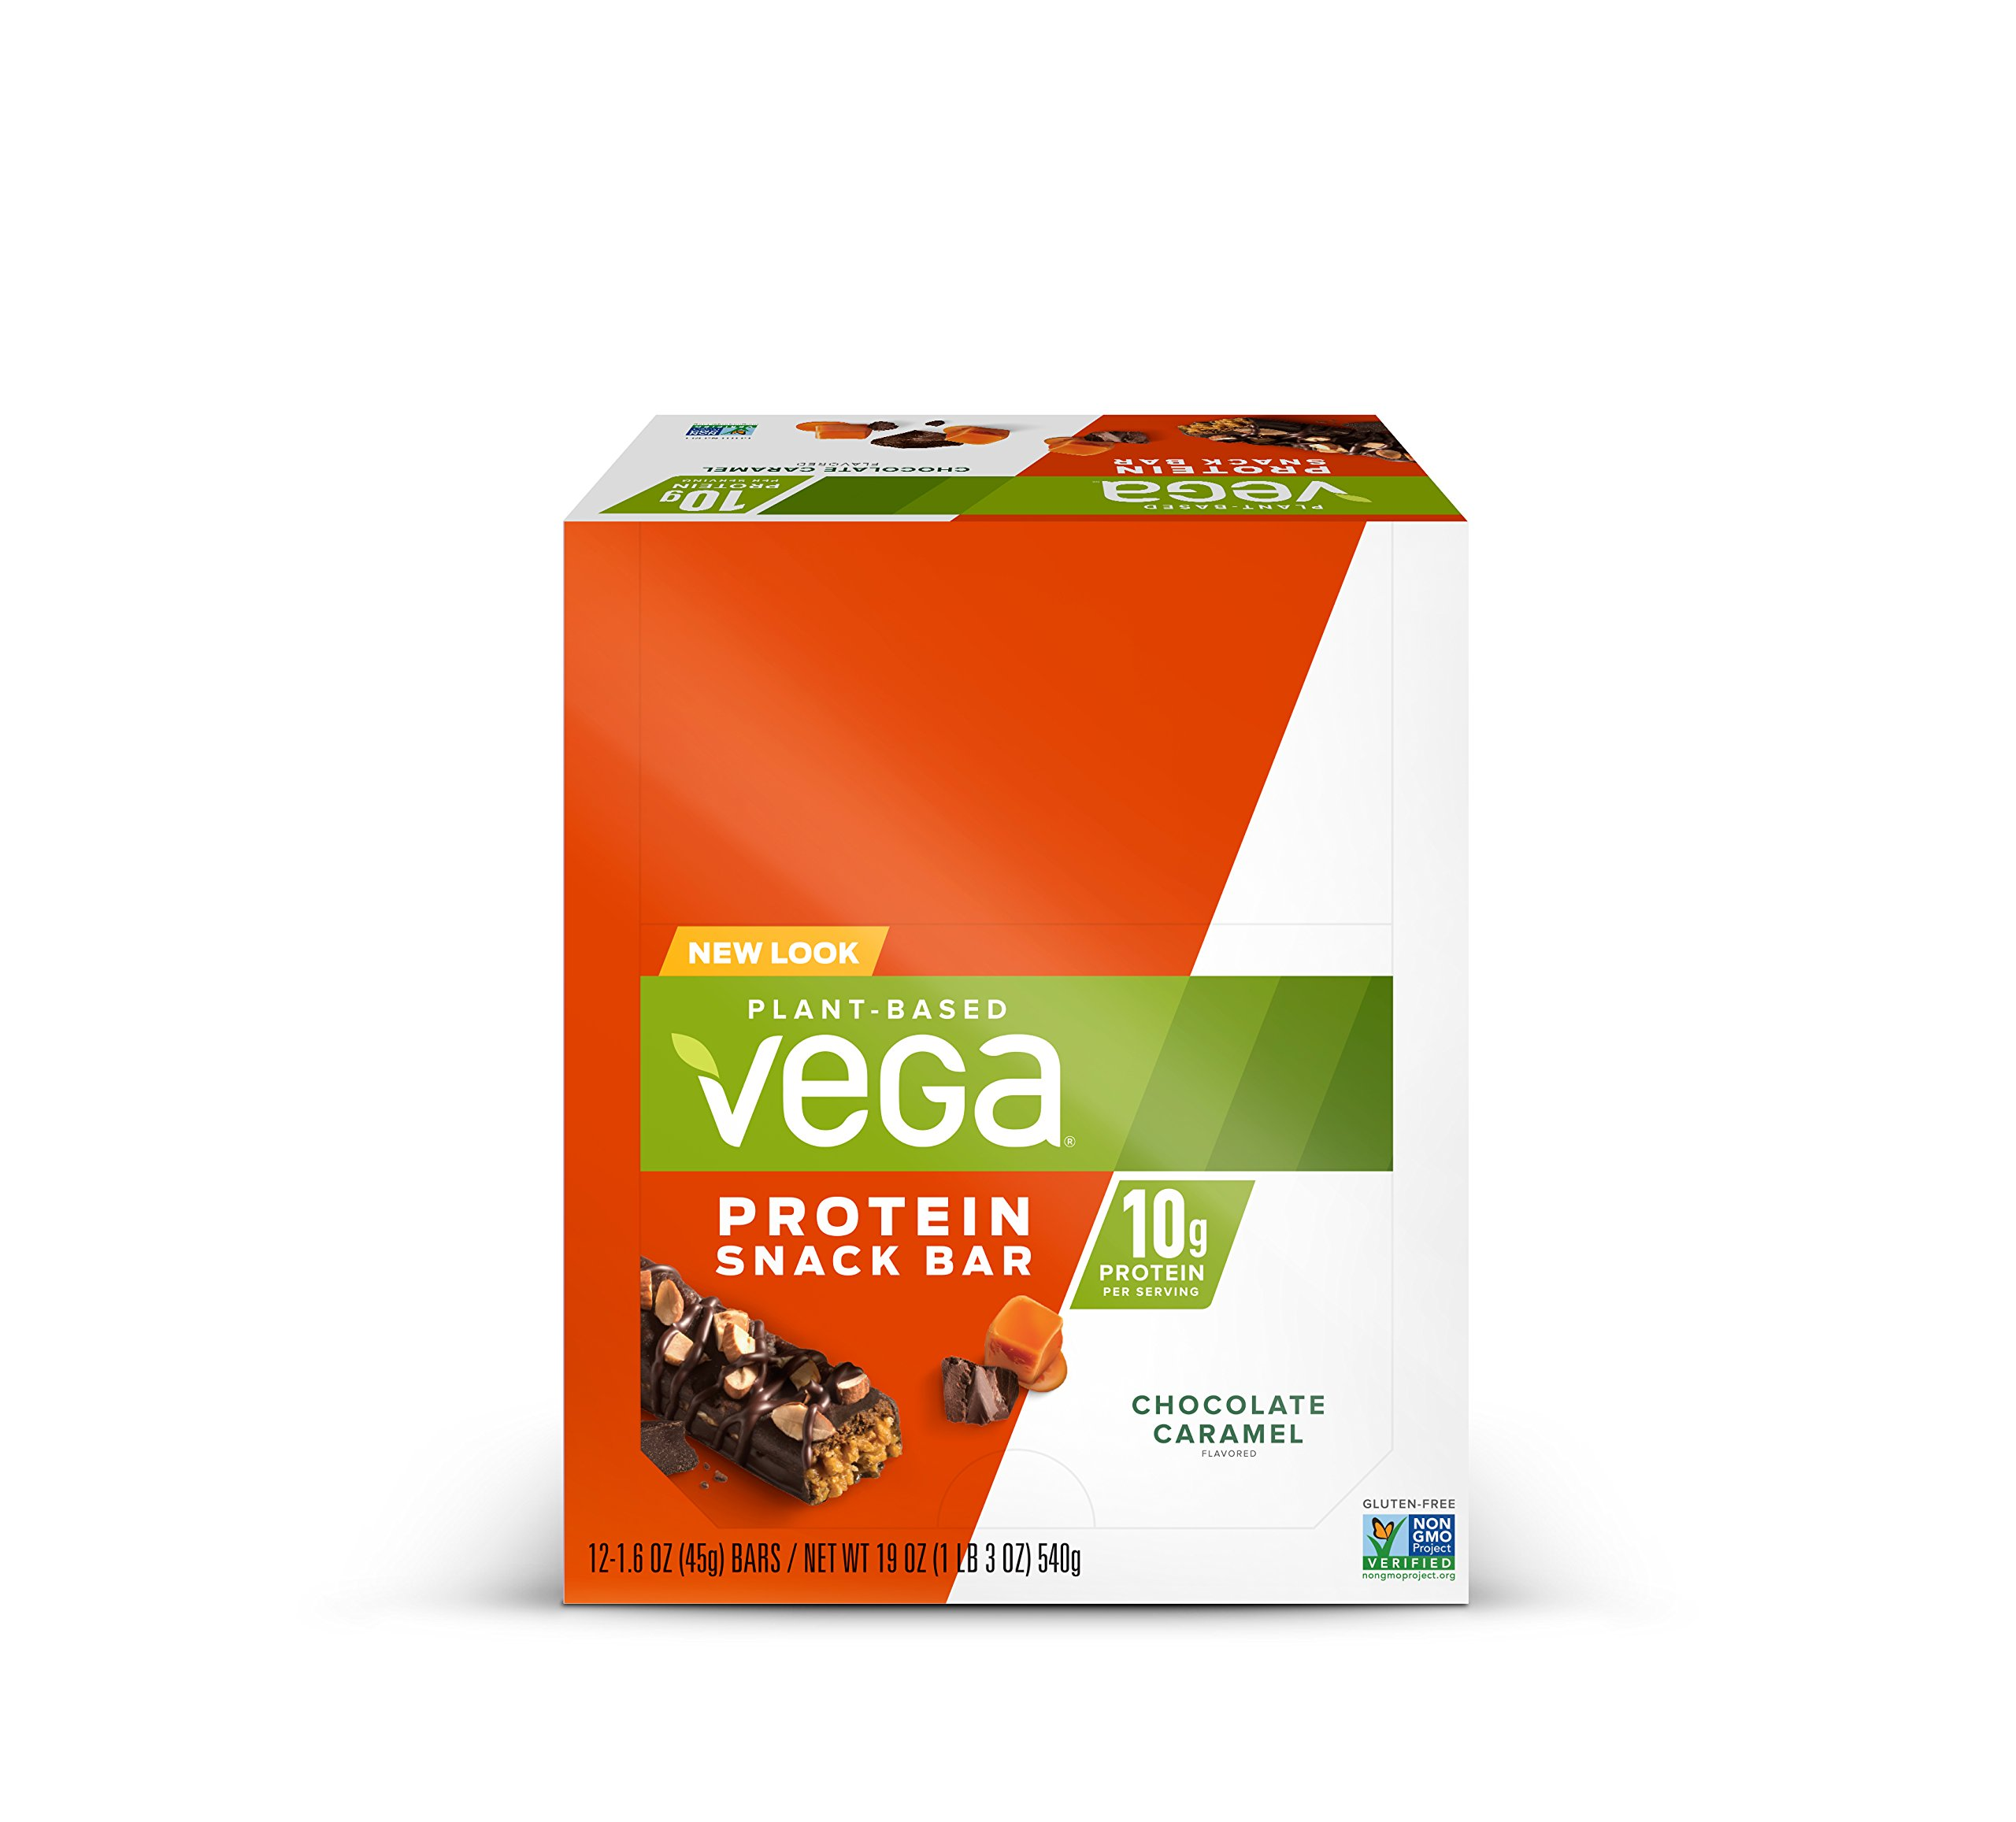 Vega Protein Snack Bar Chocolate Caramel (12 Count) - Plant Based Vegan Protein Bars, Non Dairy, Gluten Free, Non GMO by VEGA